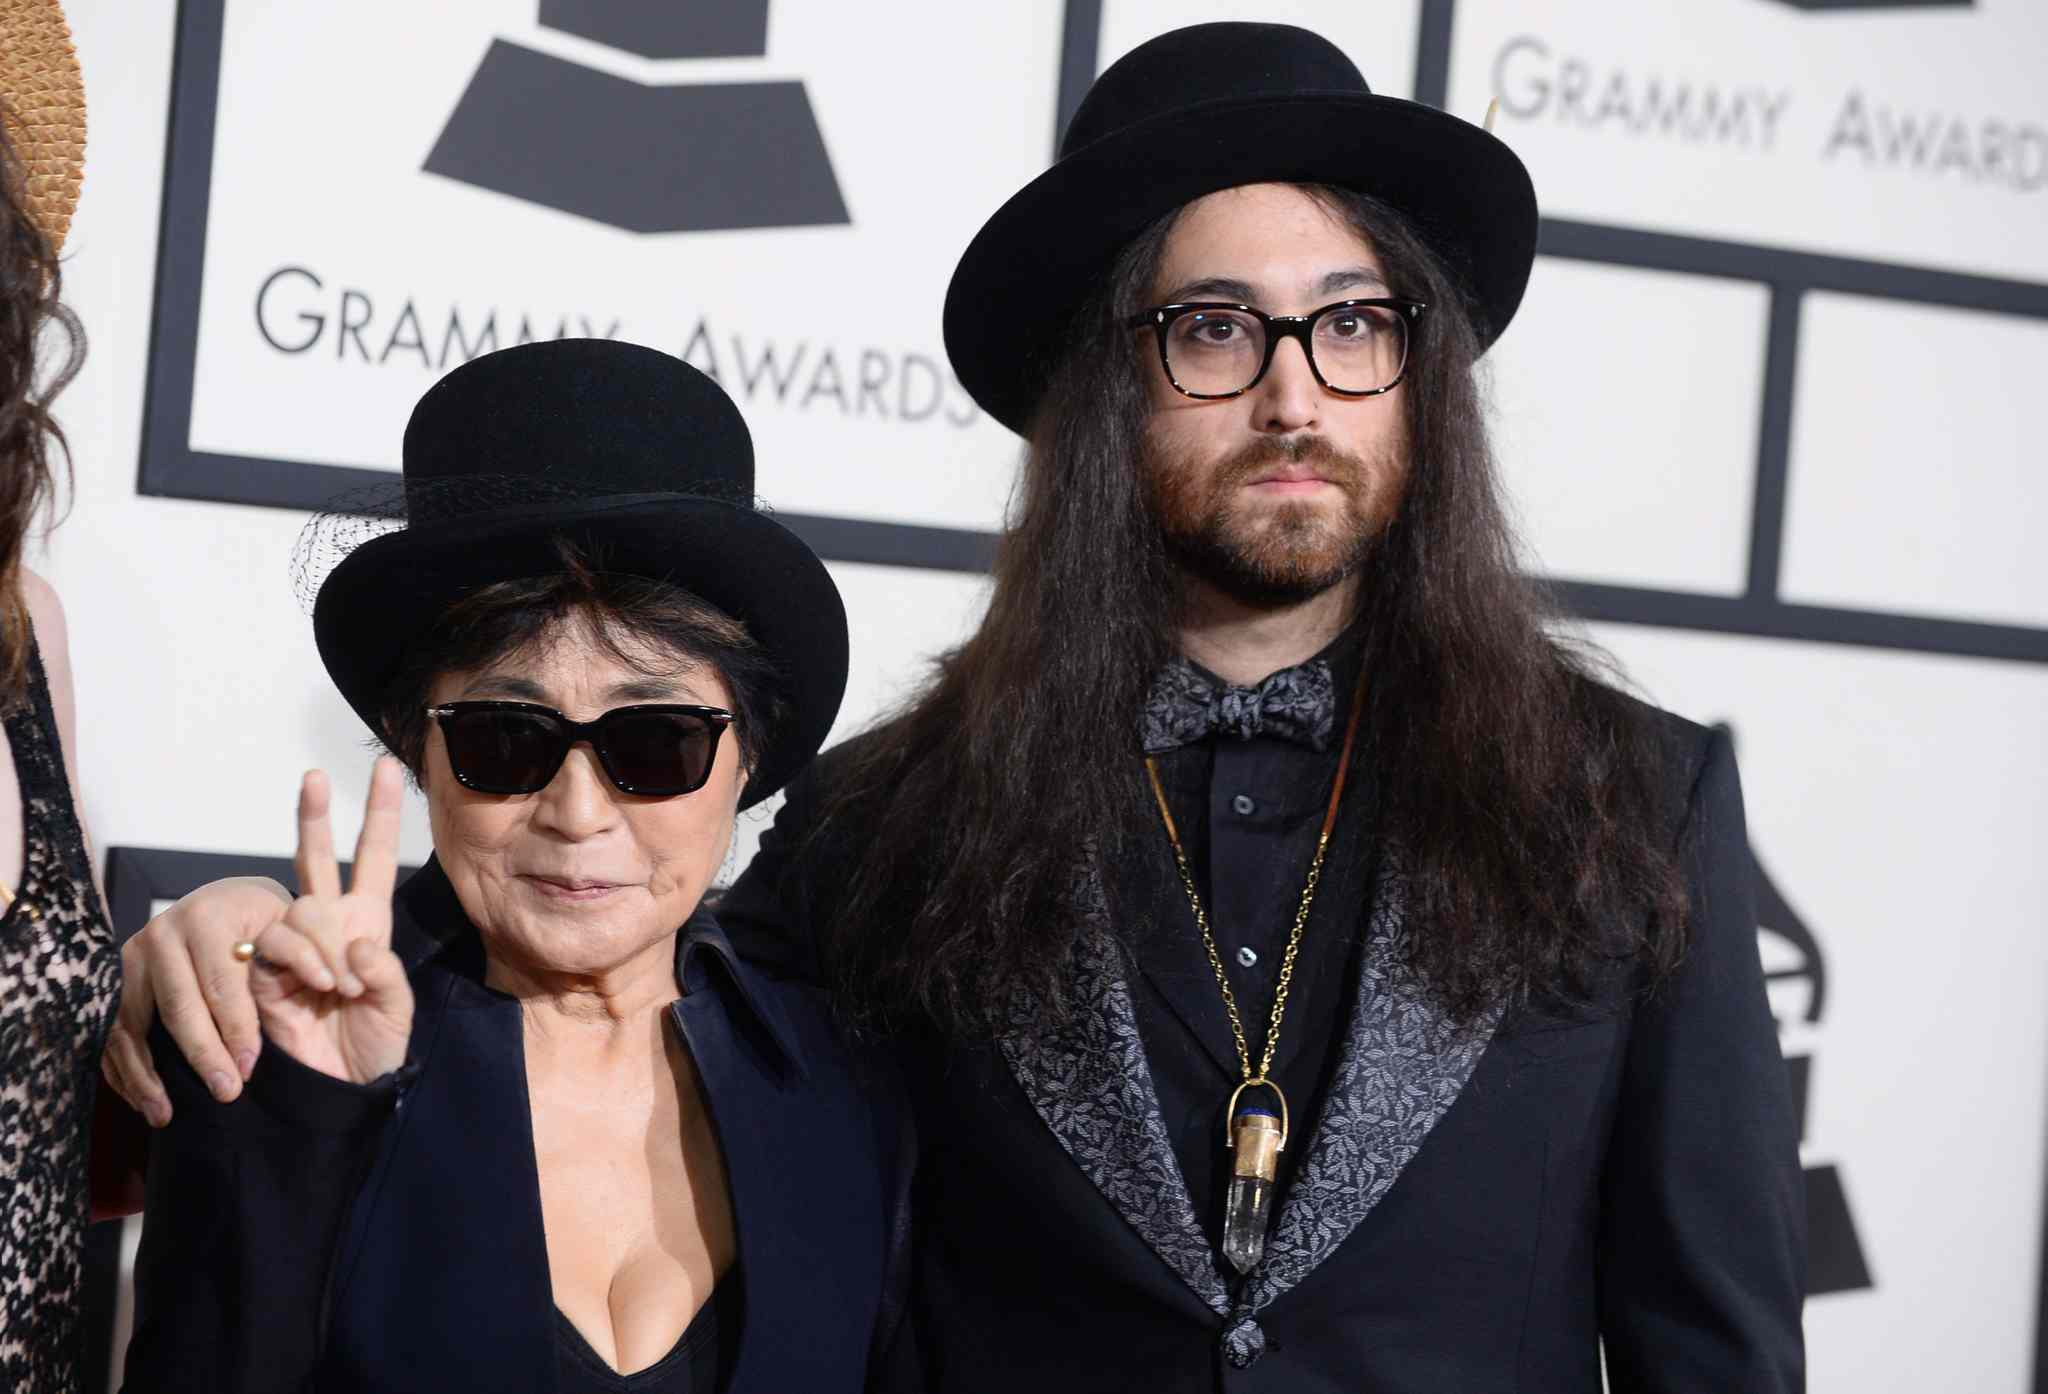 Yoko Ono, left, and Sean Lennon arrive at the 56th annual Grammy Awards.